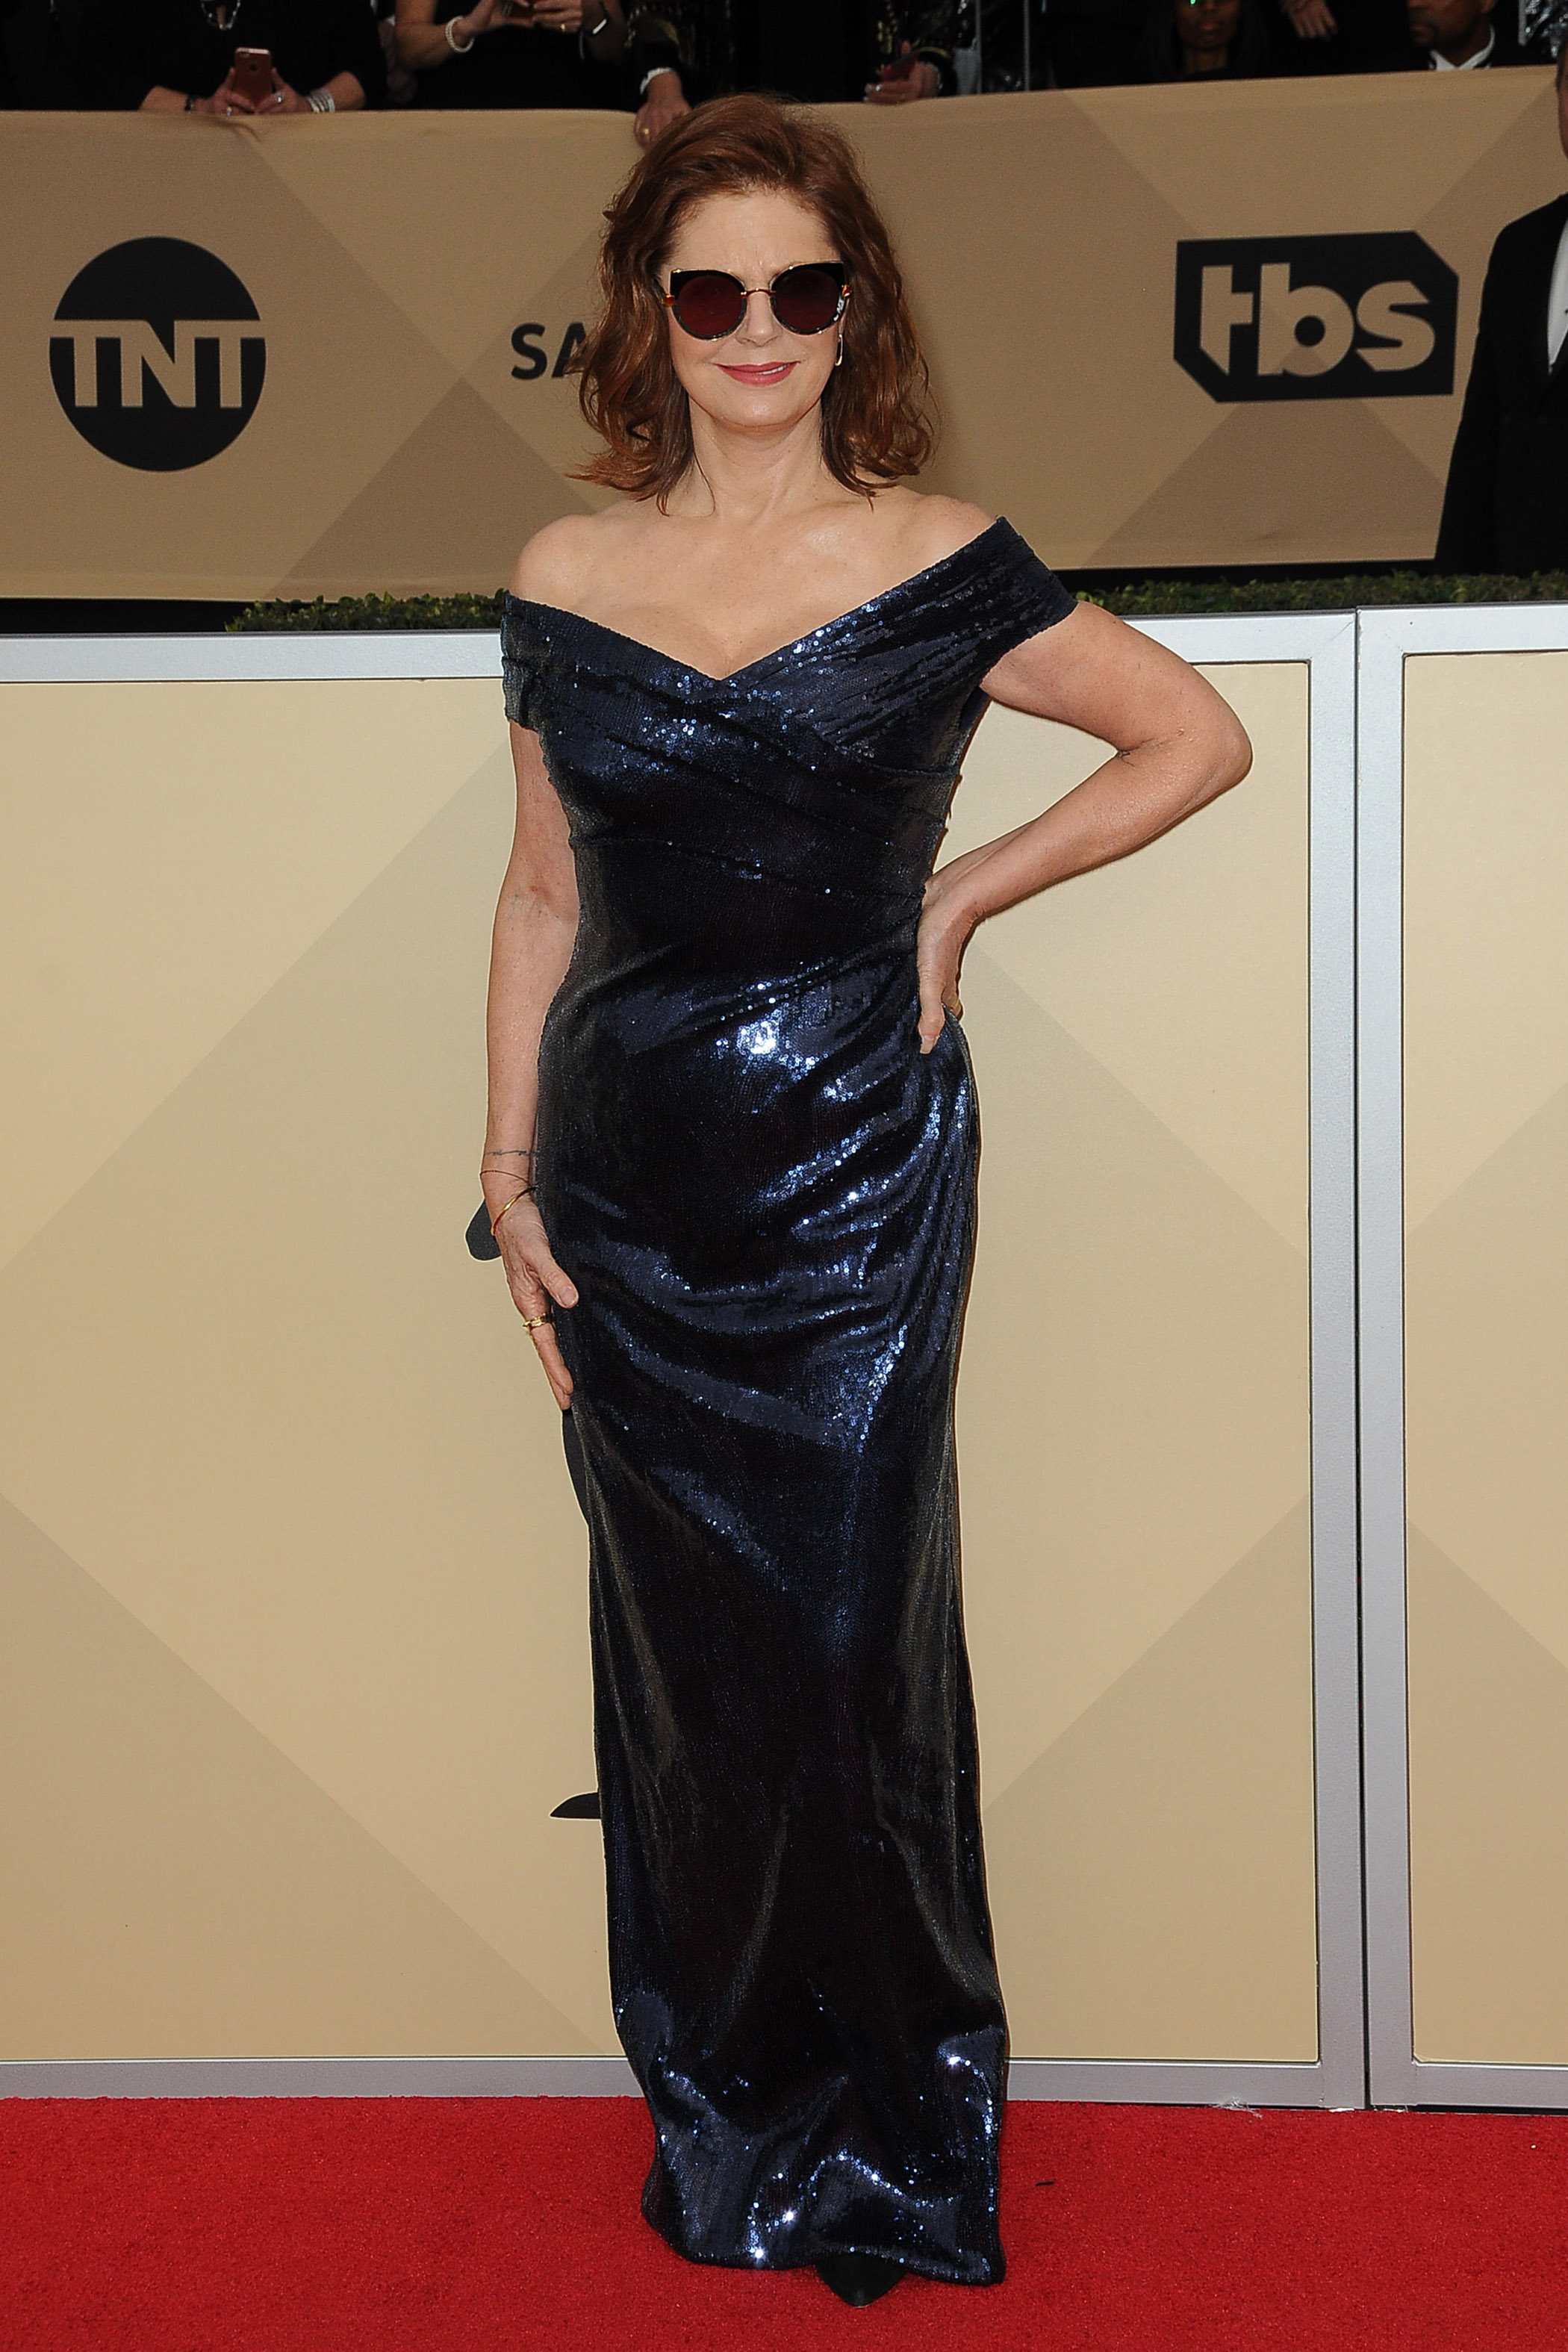 Arrivals for the 24th Annual Screen Actors Guild Awards, held at the Shrine Exposition Center in Los Angeles, California <P> Pictured: Susan Sarandon <B>Ref: SPL1649120  210118  </B><BR/> Picture by: Splash News<BR/> </P><P> <B>Splash News and Pictures</B><BR/> Los Angeles:	310-821-2666<BR/> New York:	212-619-2666<BR/> London:	870-934-2666<BR/> <span id=